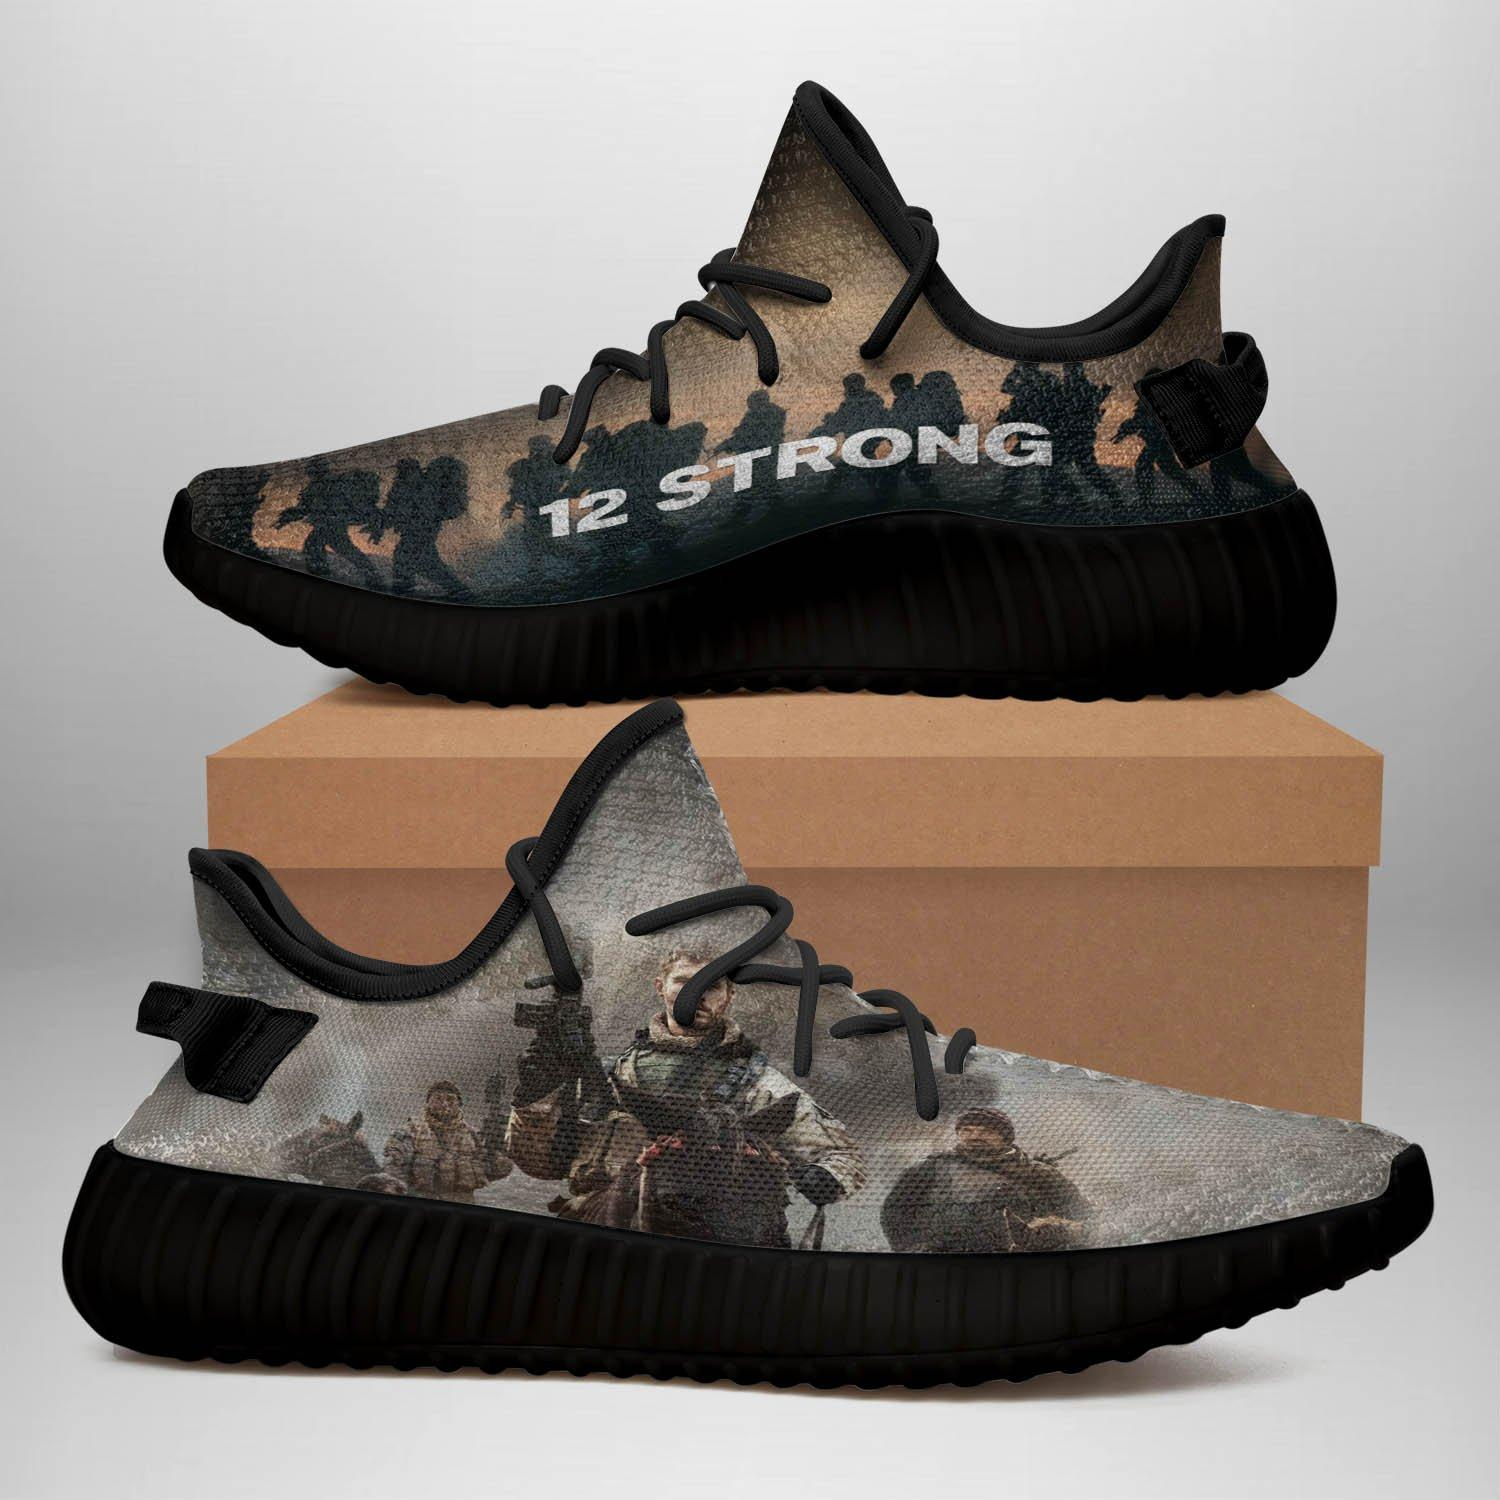 12 Strong ? Black Yeezy Sneakers PT070B